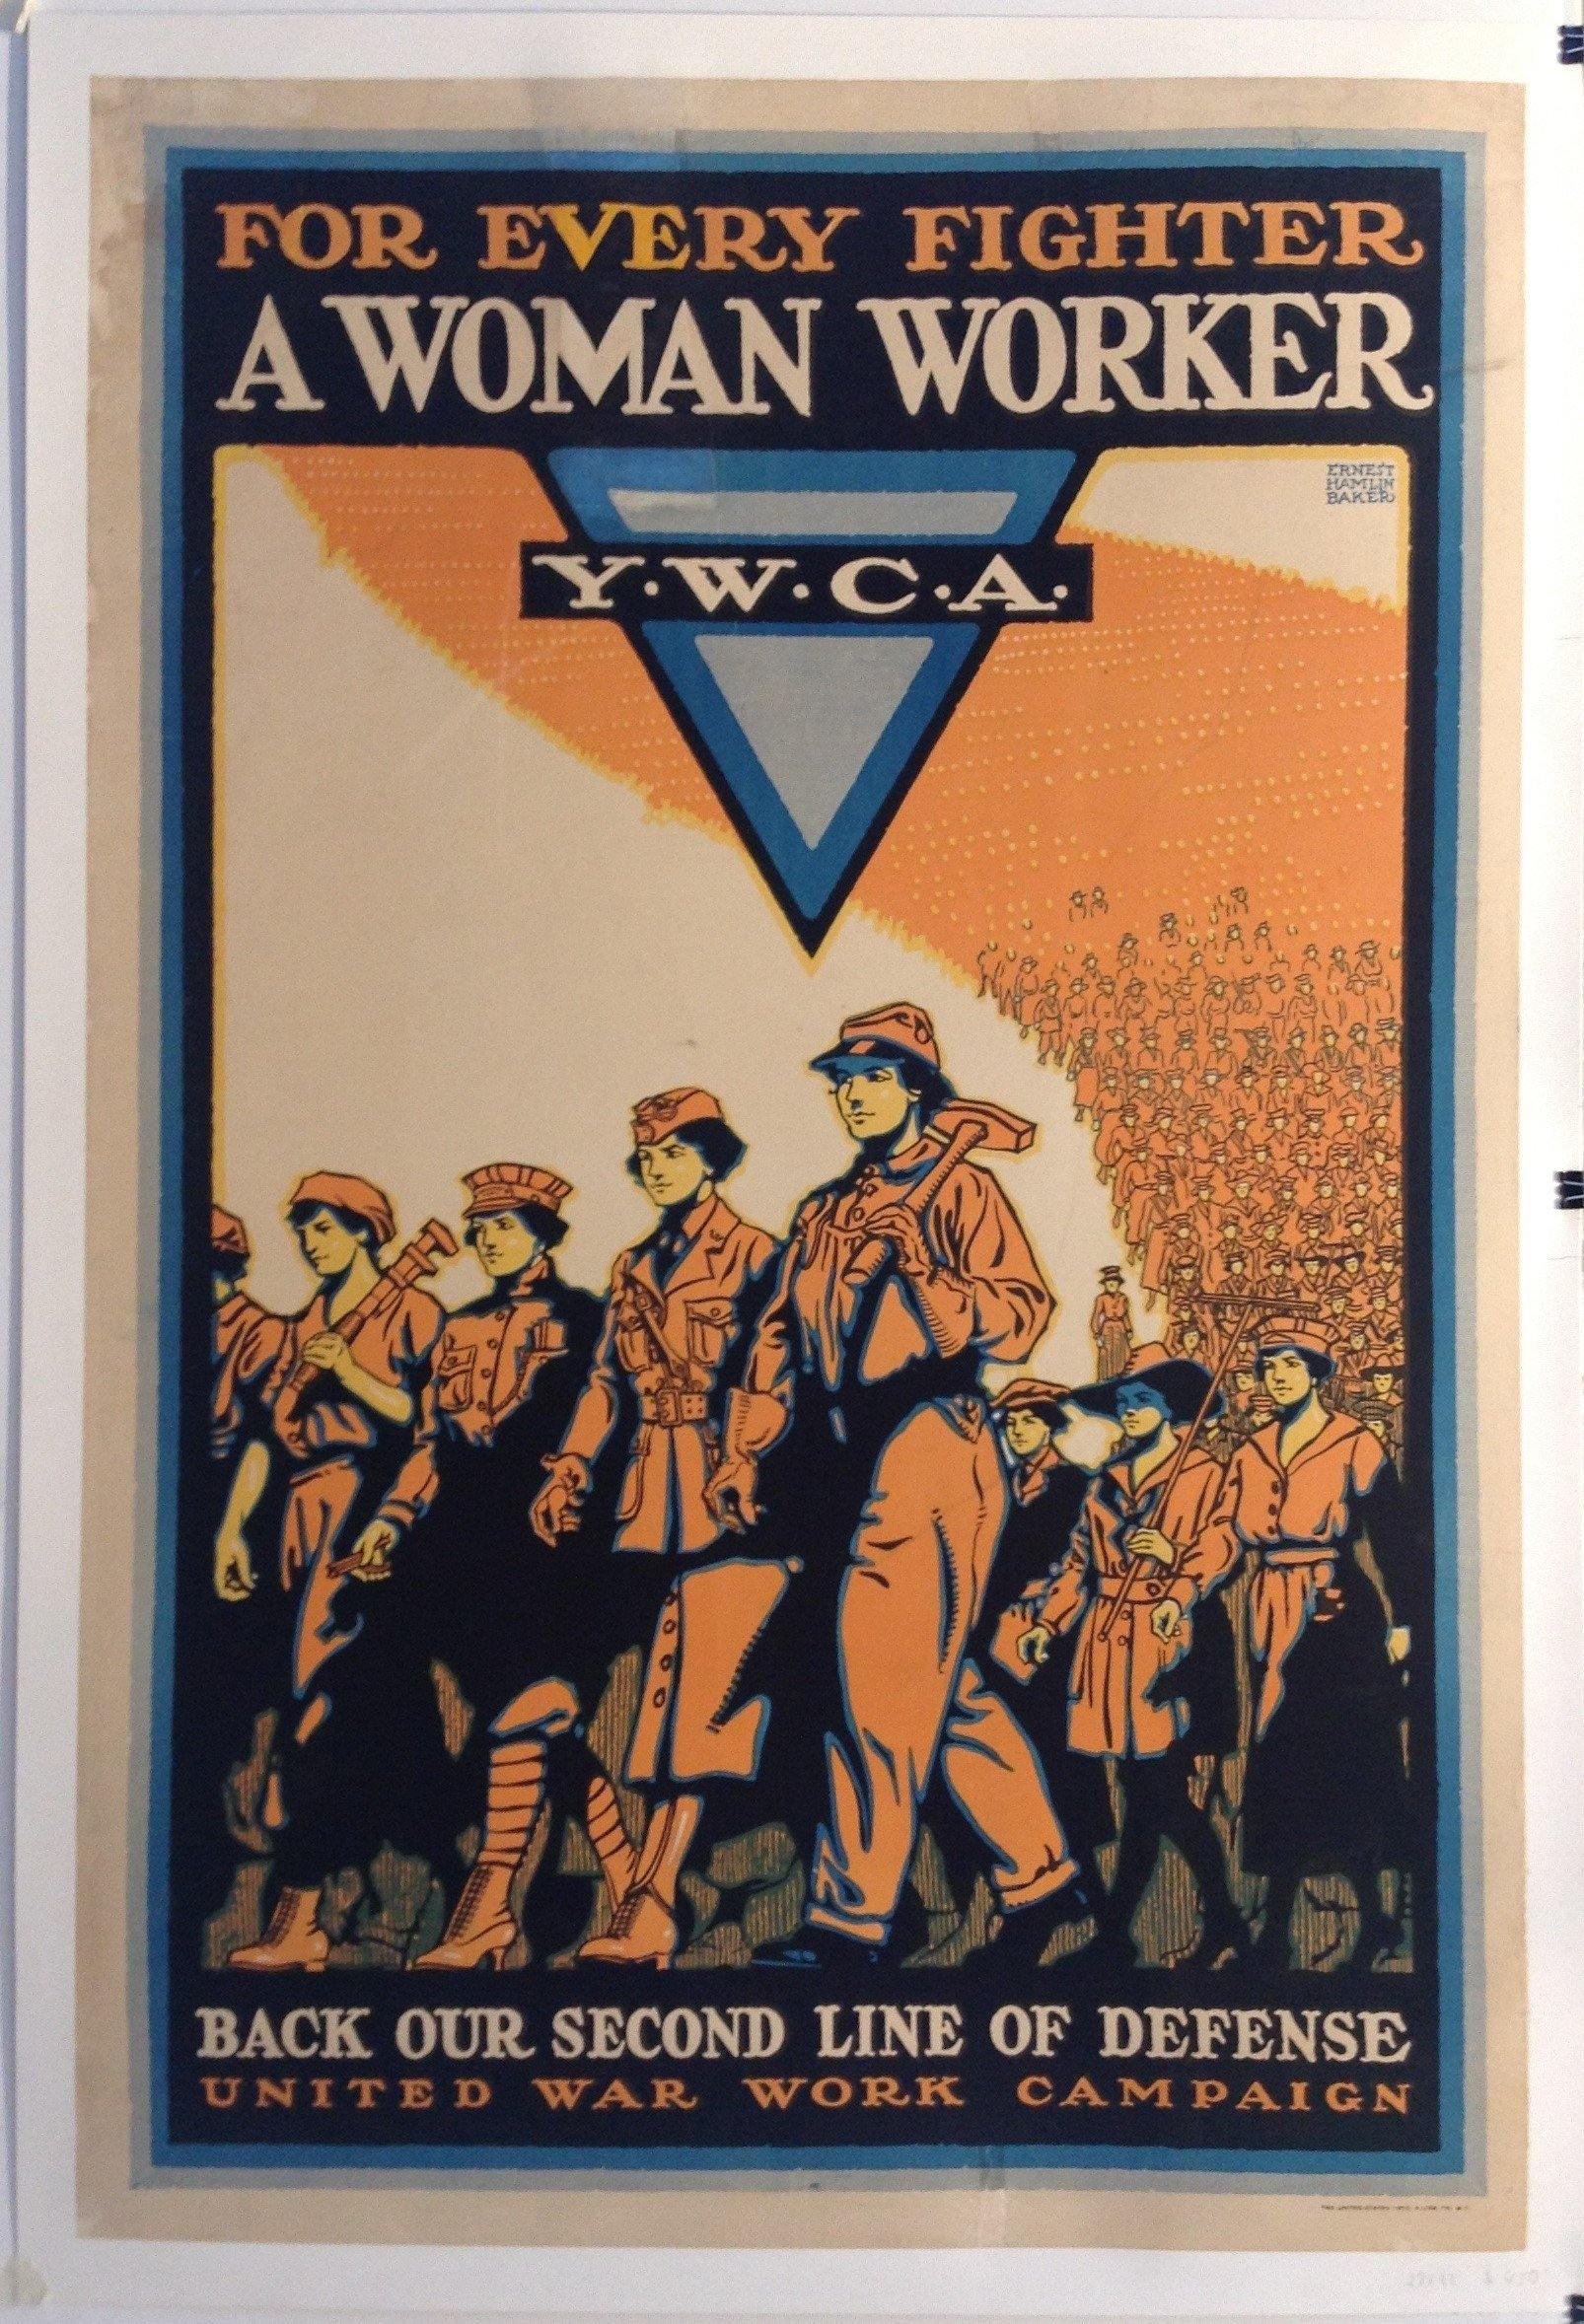 For Every Fighter a Woman Worker Y.W.C.A.